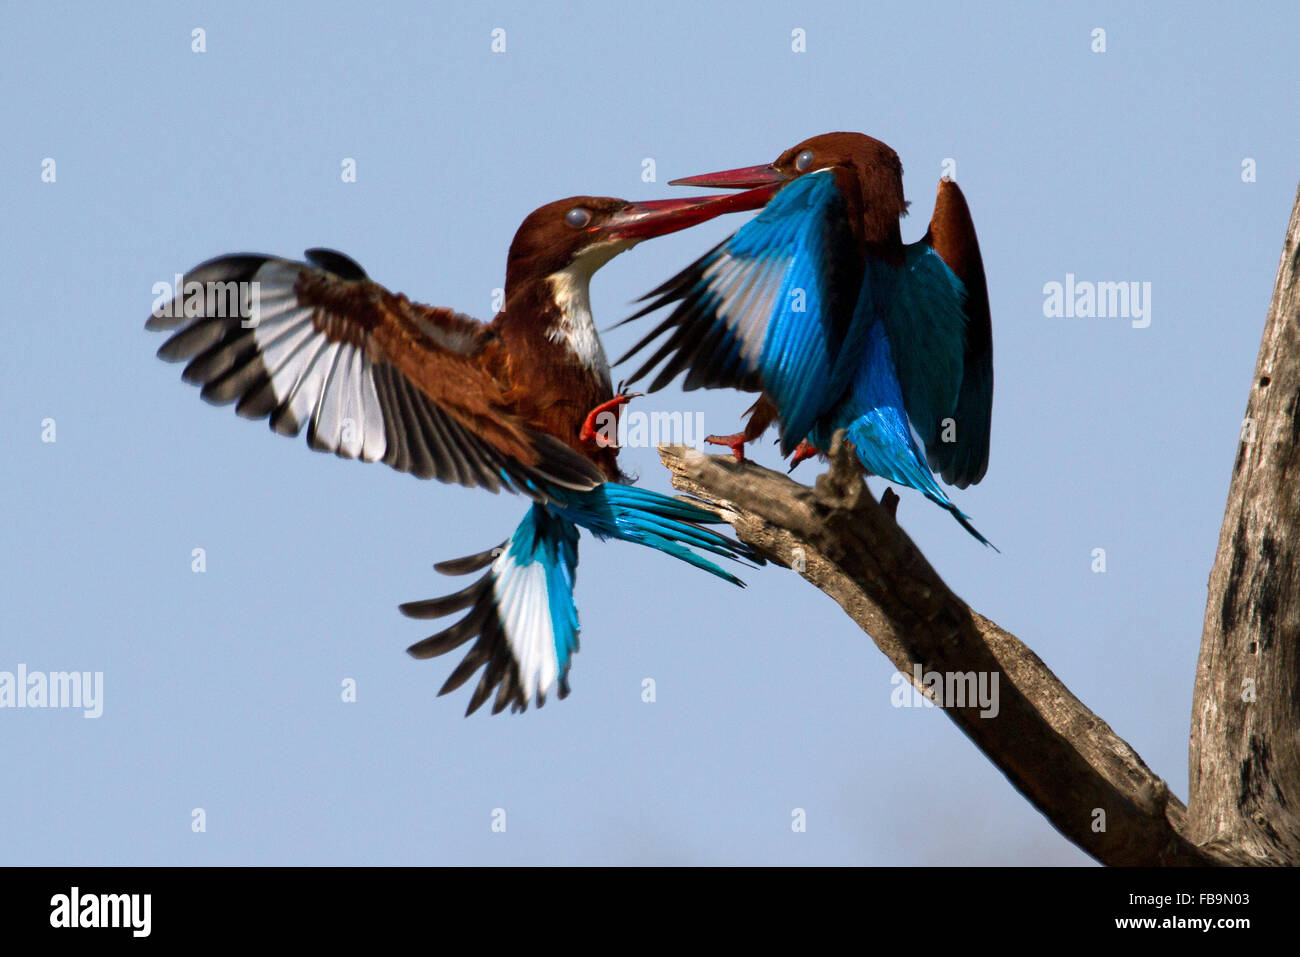 White-throated Kingfisher or White-breasted Kingfisher - Stock Image